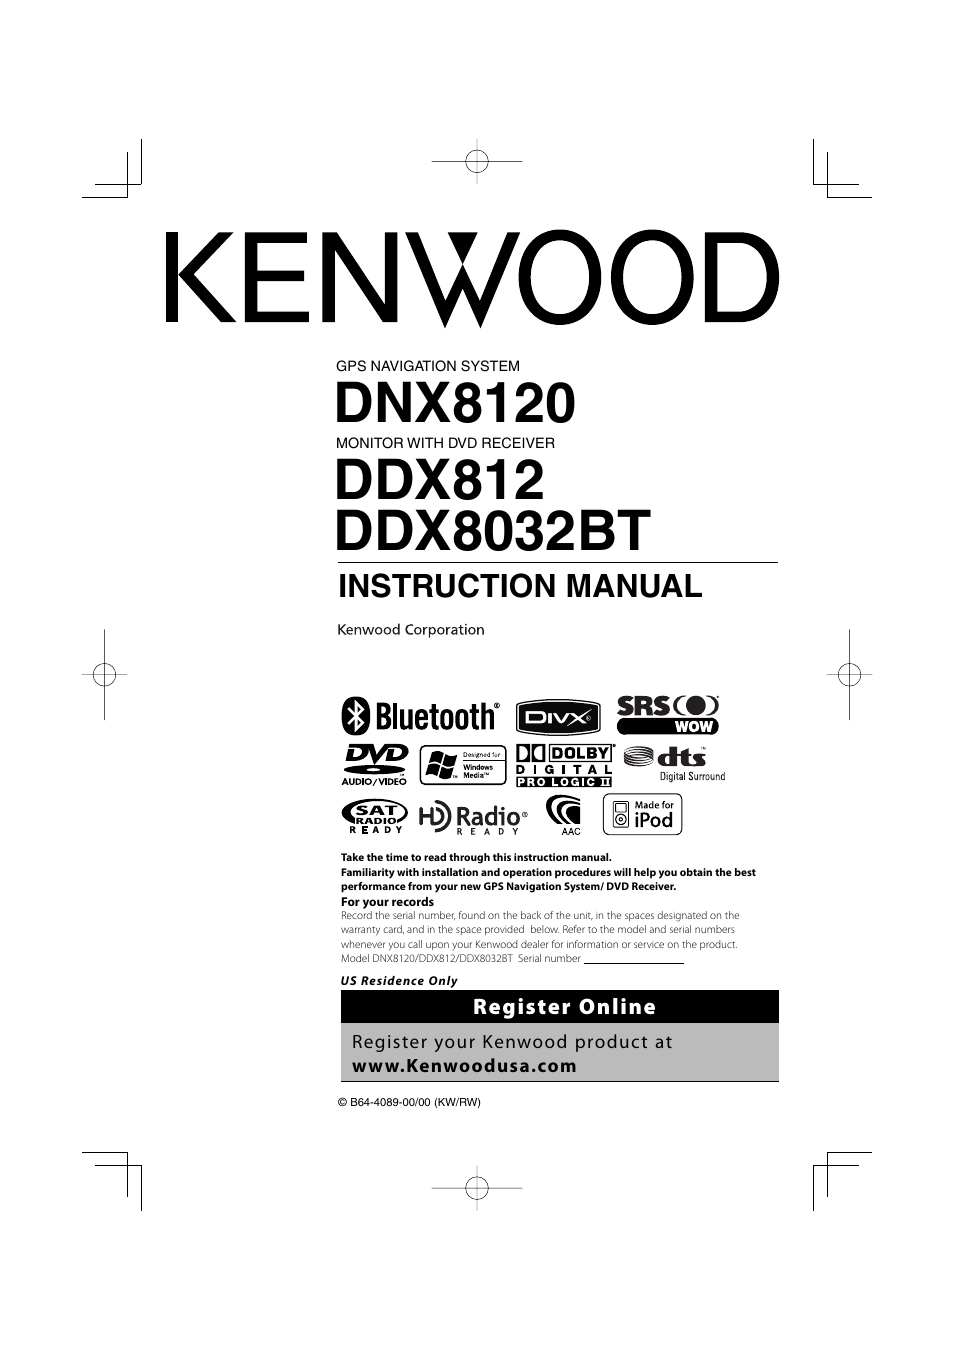 kenwood excelon ddx812 user manual 112 pages rh manualsdir com Kenwood DDX812 User Manual Kenwood DDX812 Problems